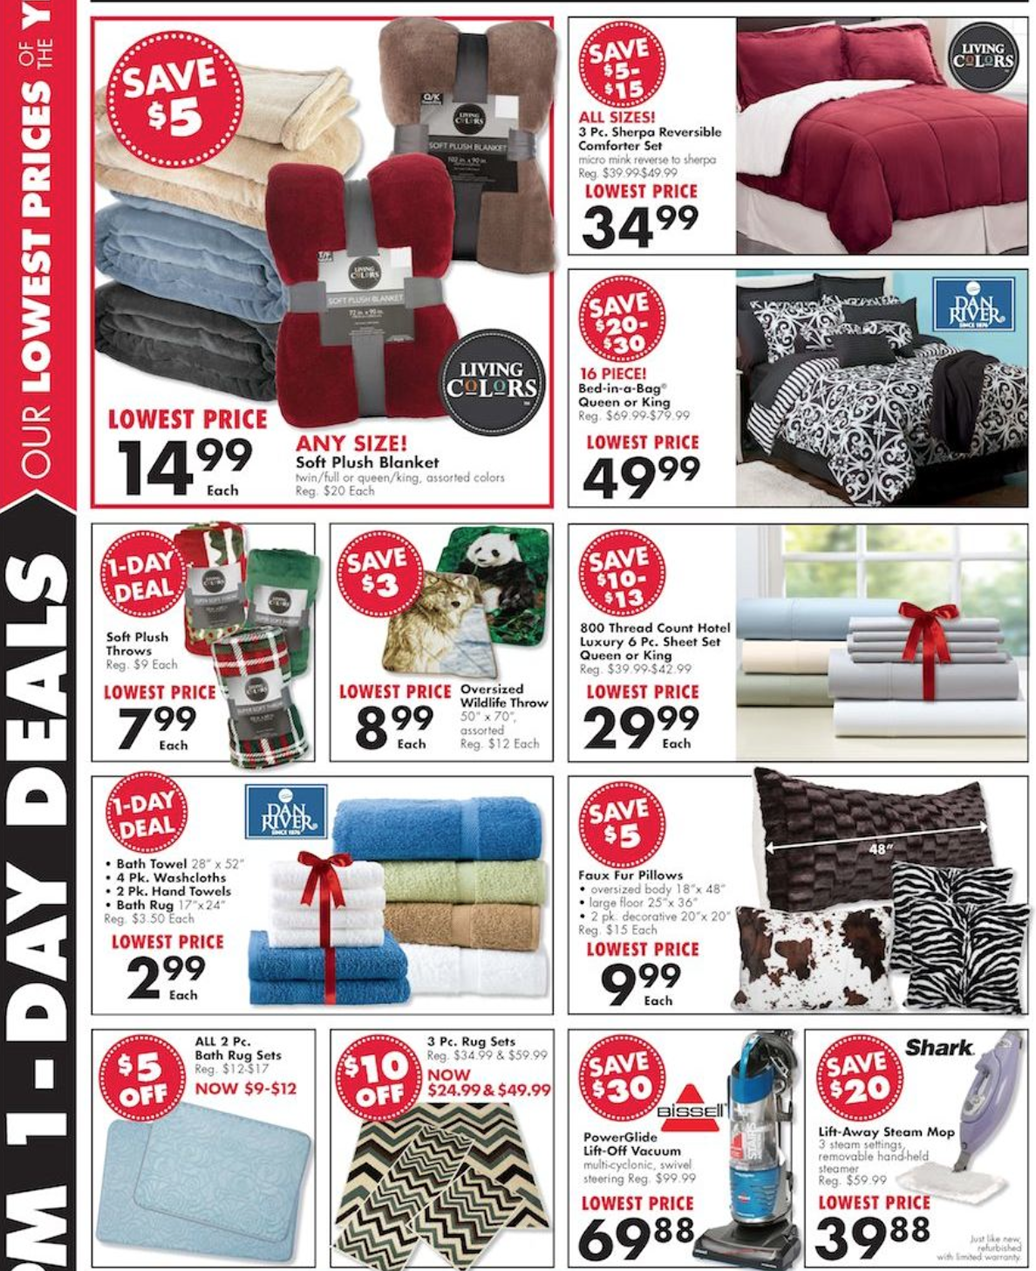 Furniture Stores Black Friday Sales: Big Lots Black Friday 2018 Sale & Furniture Deals